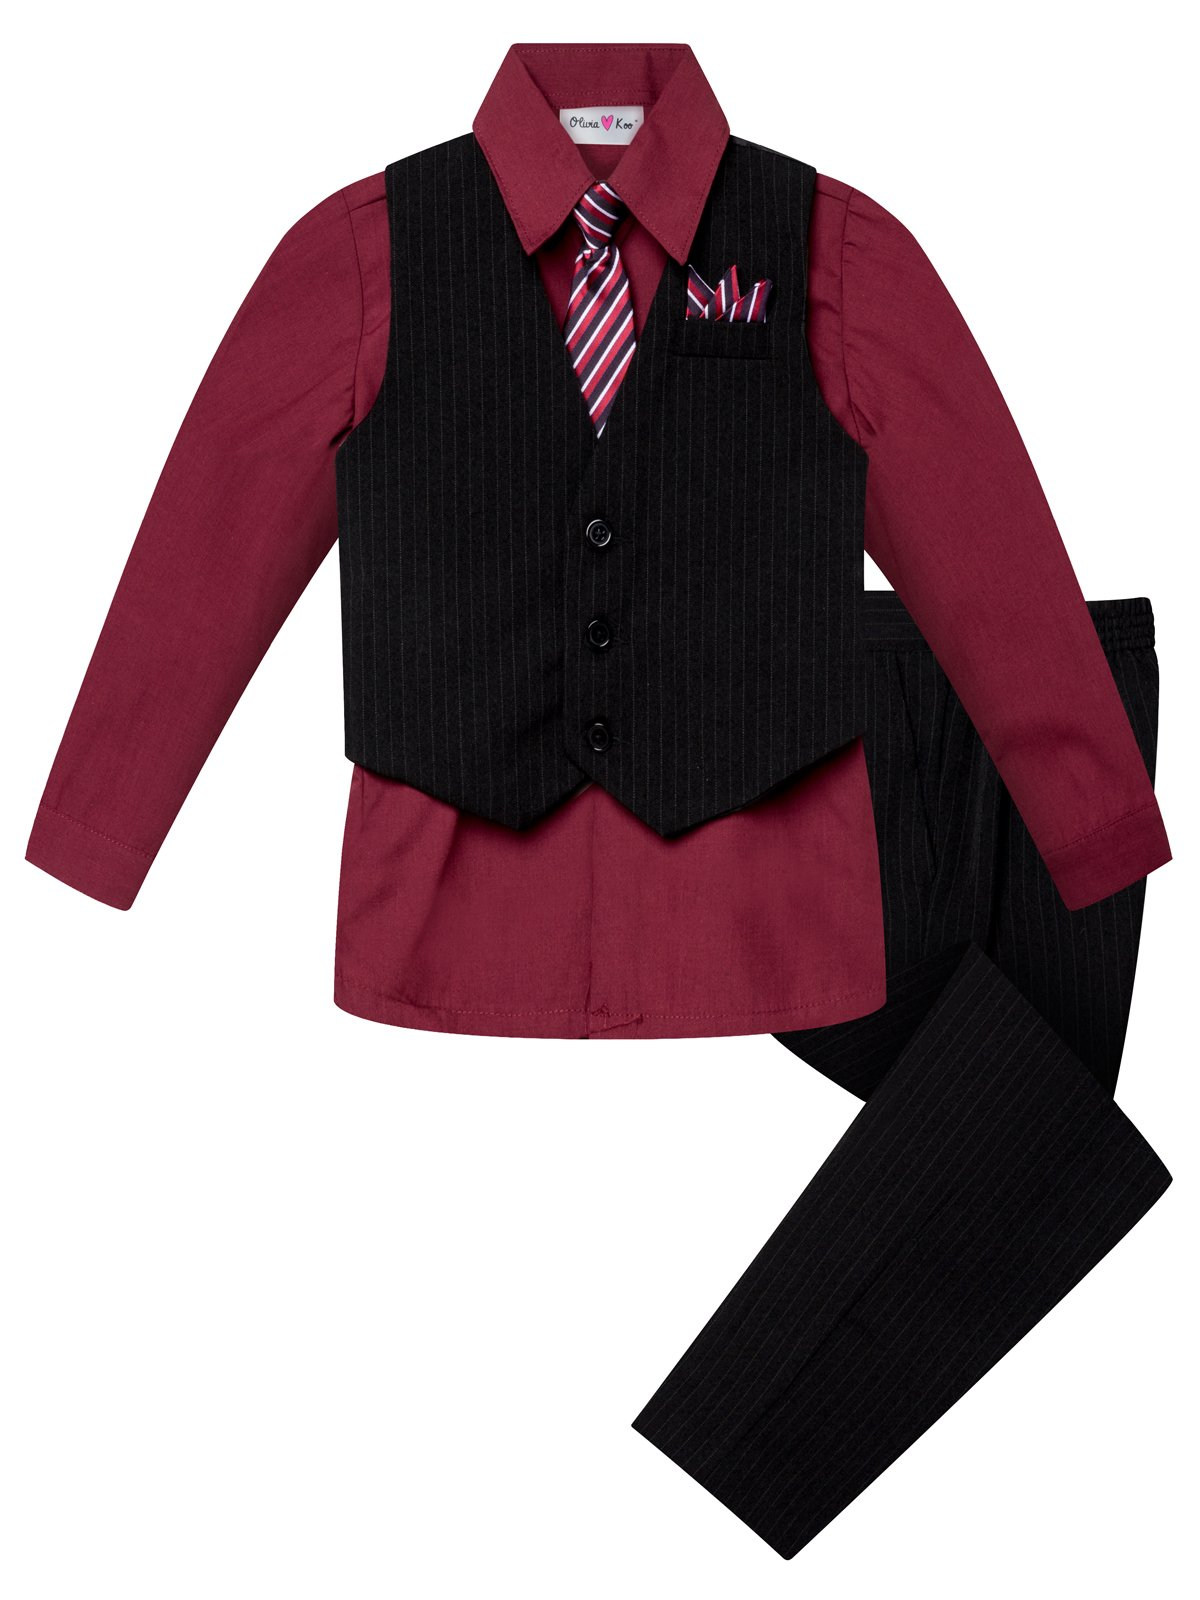 OLIVIA KOO Boys Colored Shirt Pinstripe 4 Piece Pinstriped Vest Set Size Infant-Boy,Burgundy,3T